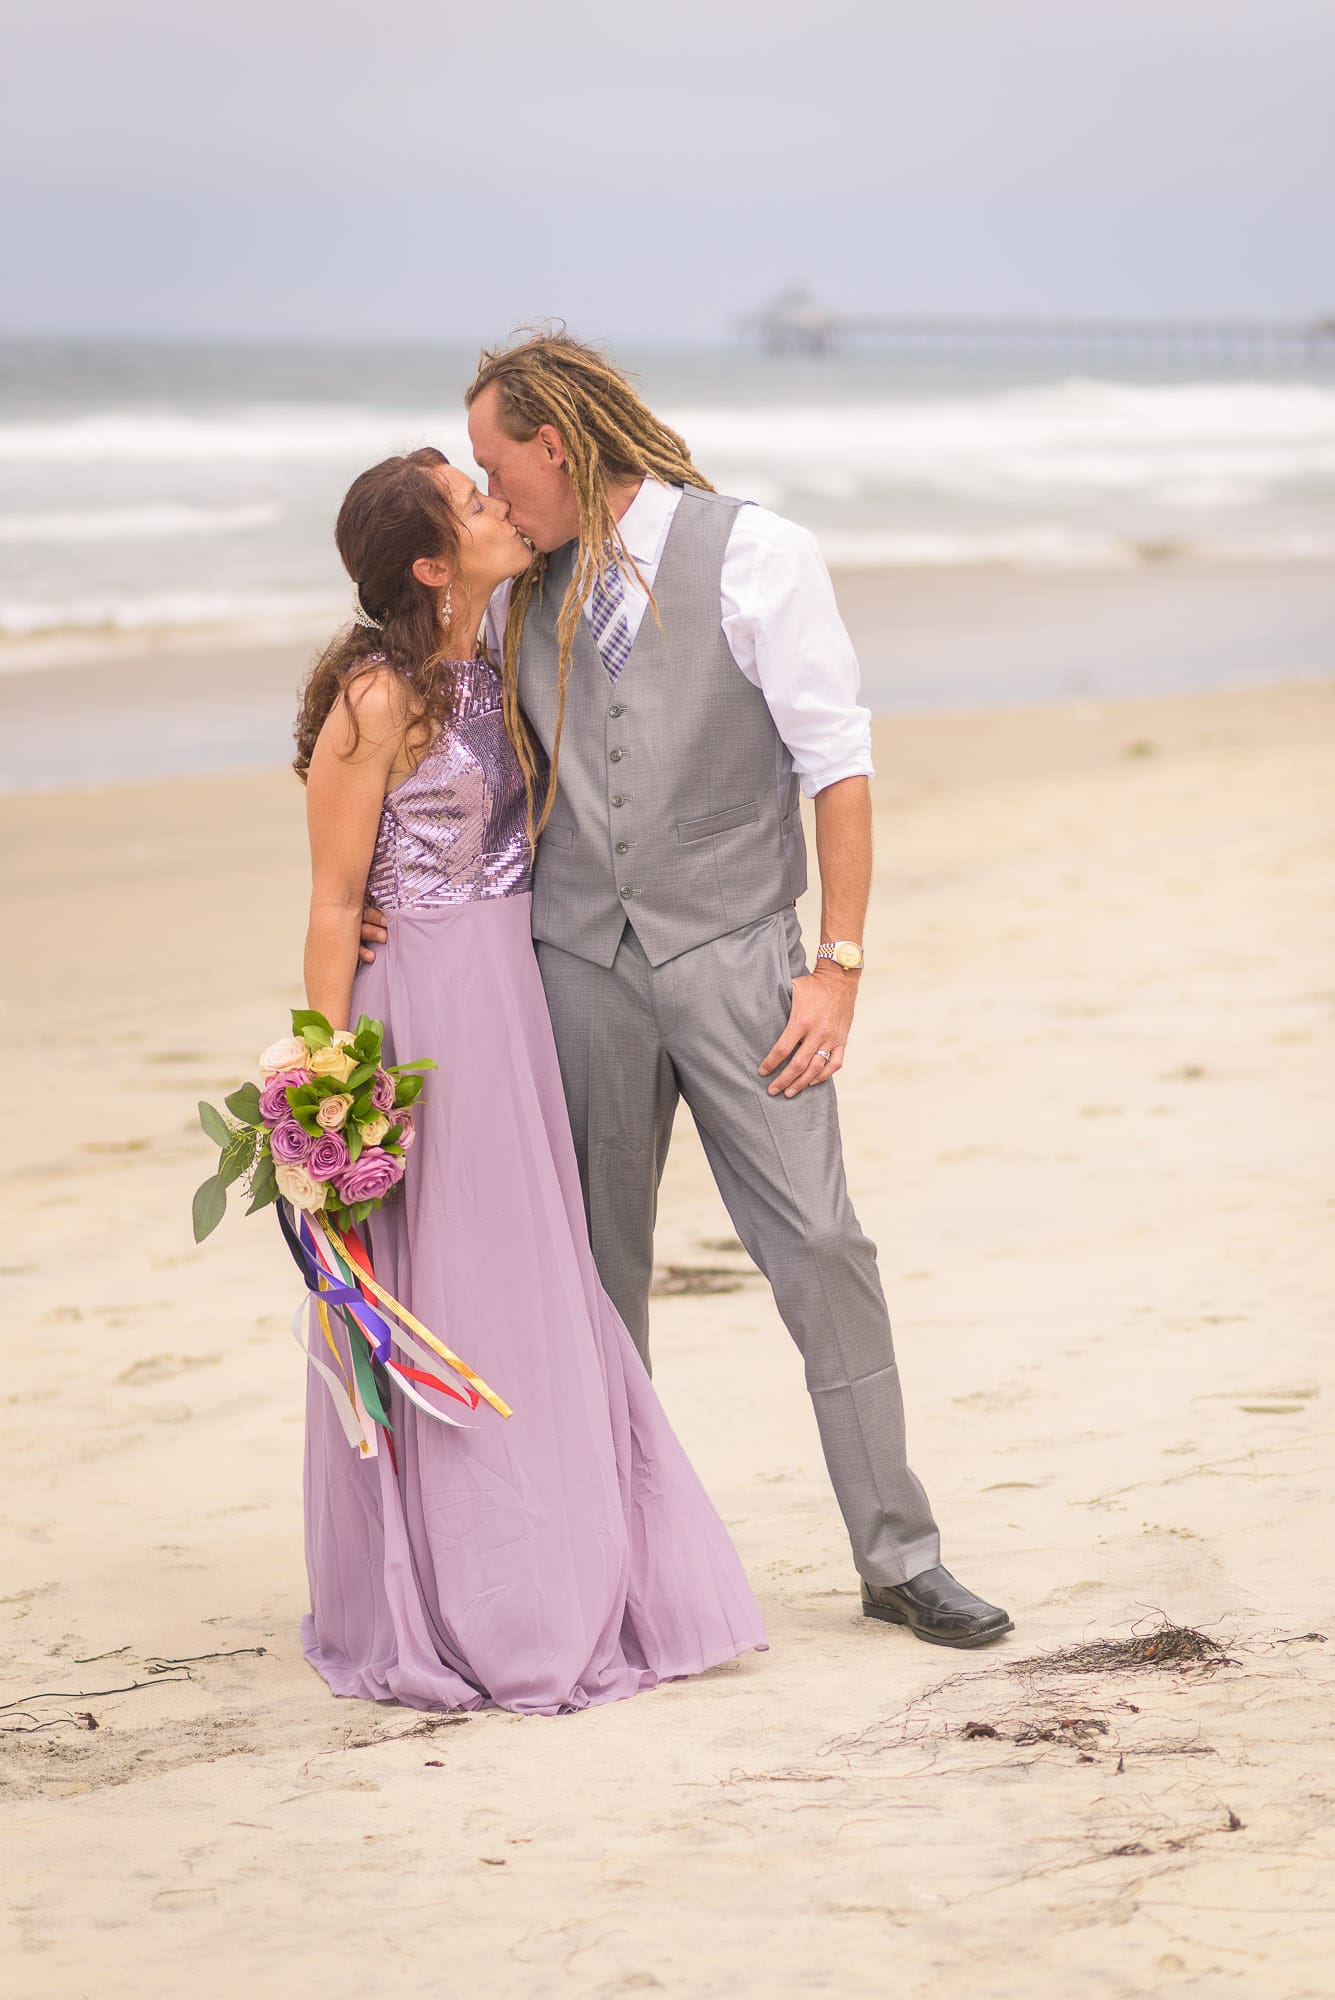 026_Alan_and_Heidi_Brianne_Nathan_San_Diego_Elopement